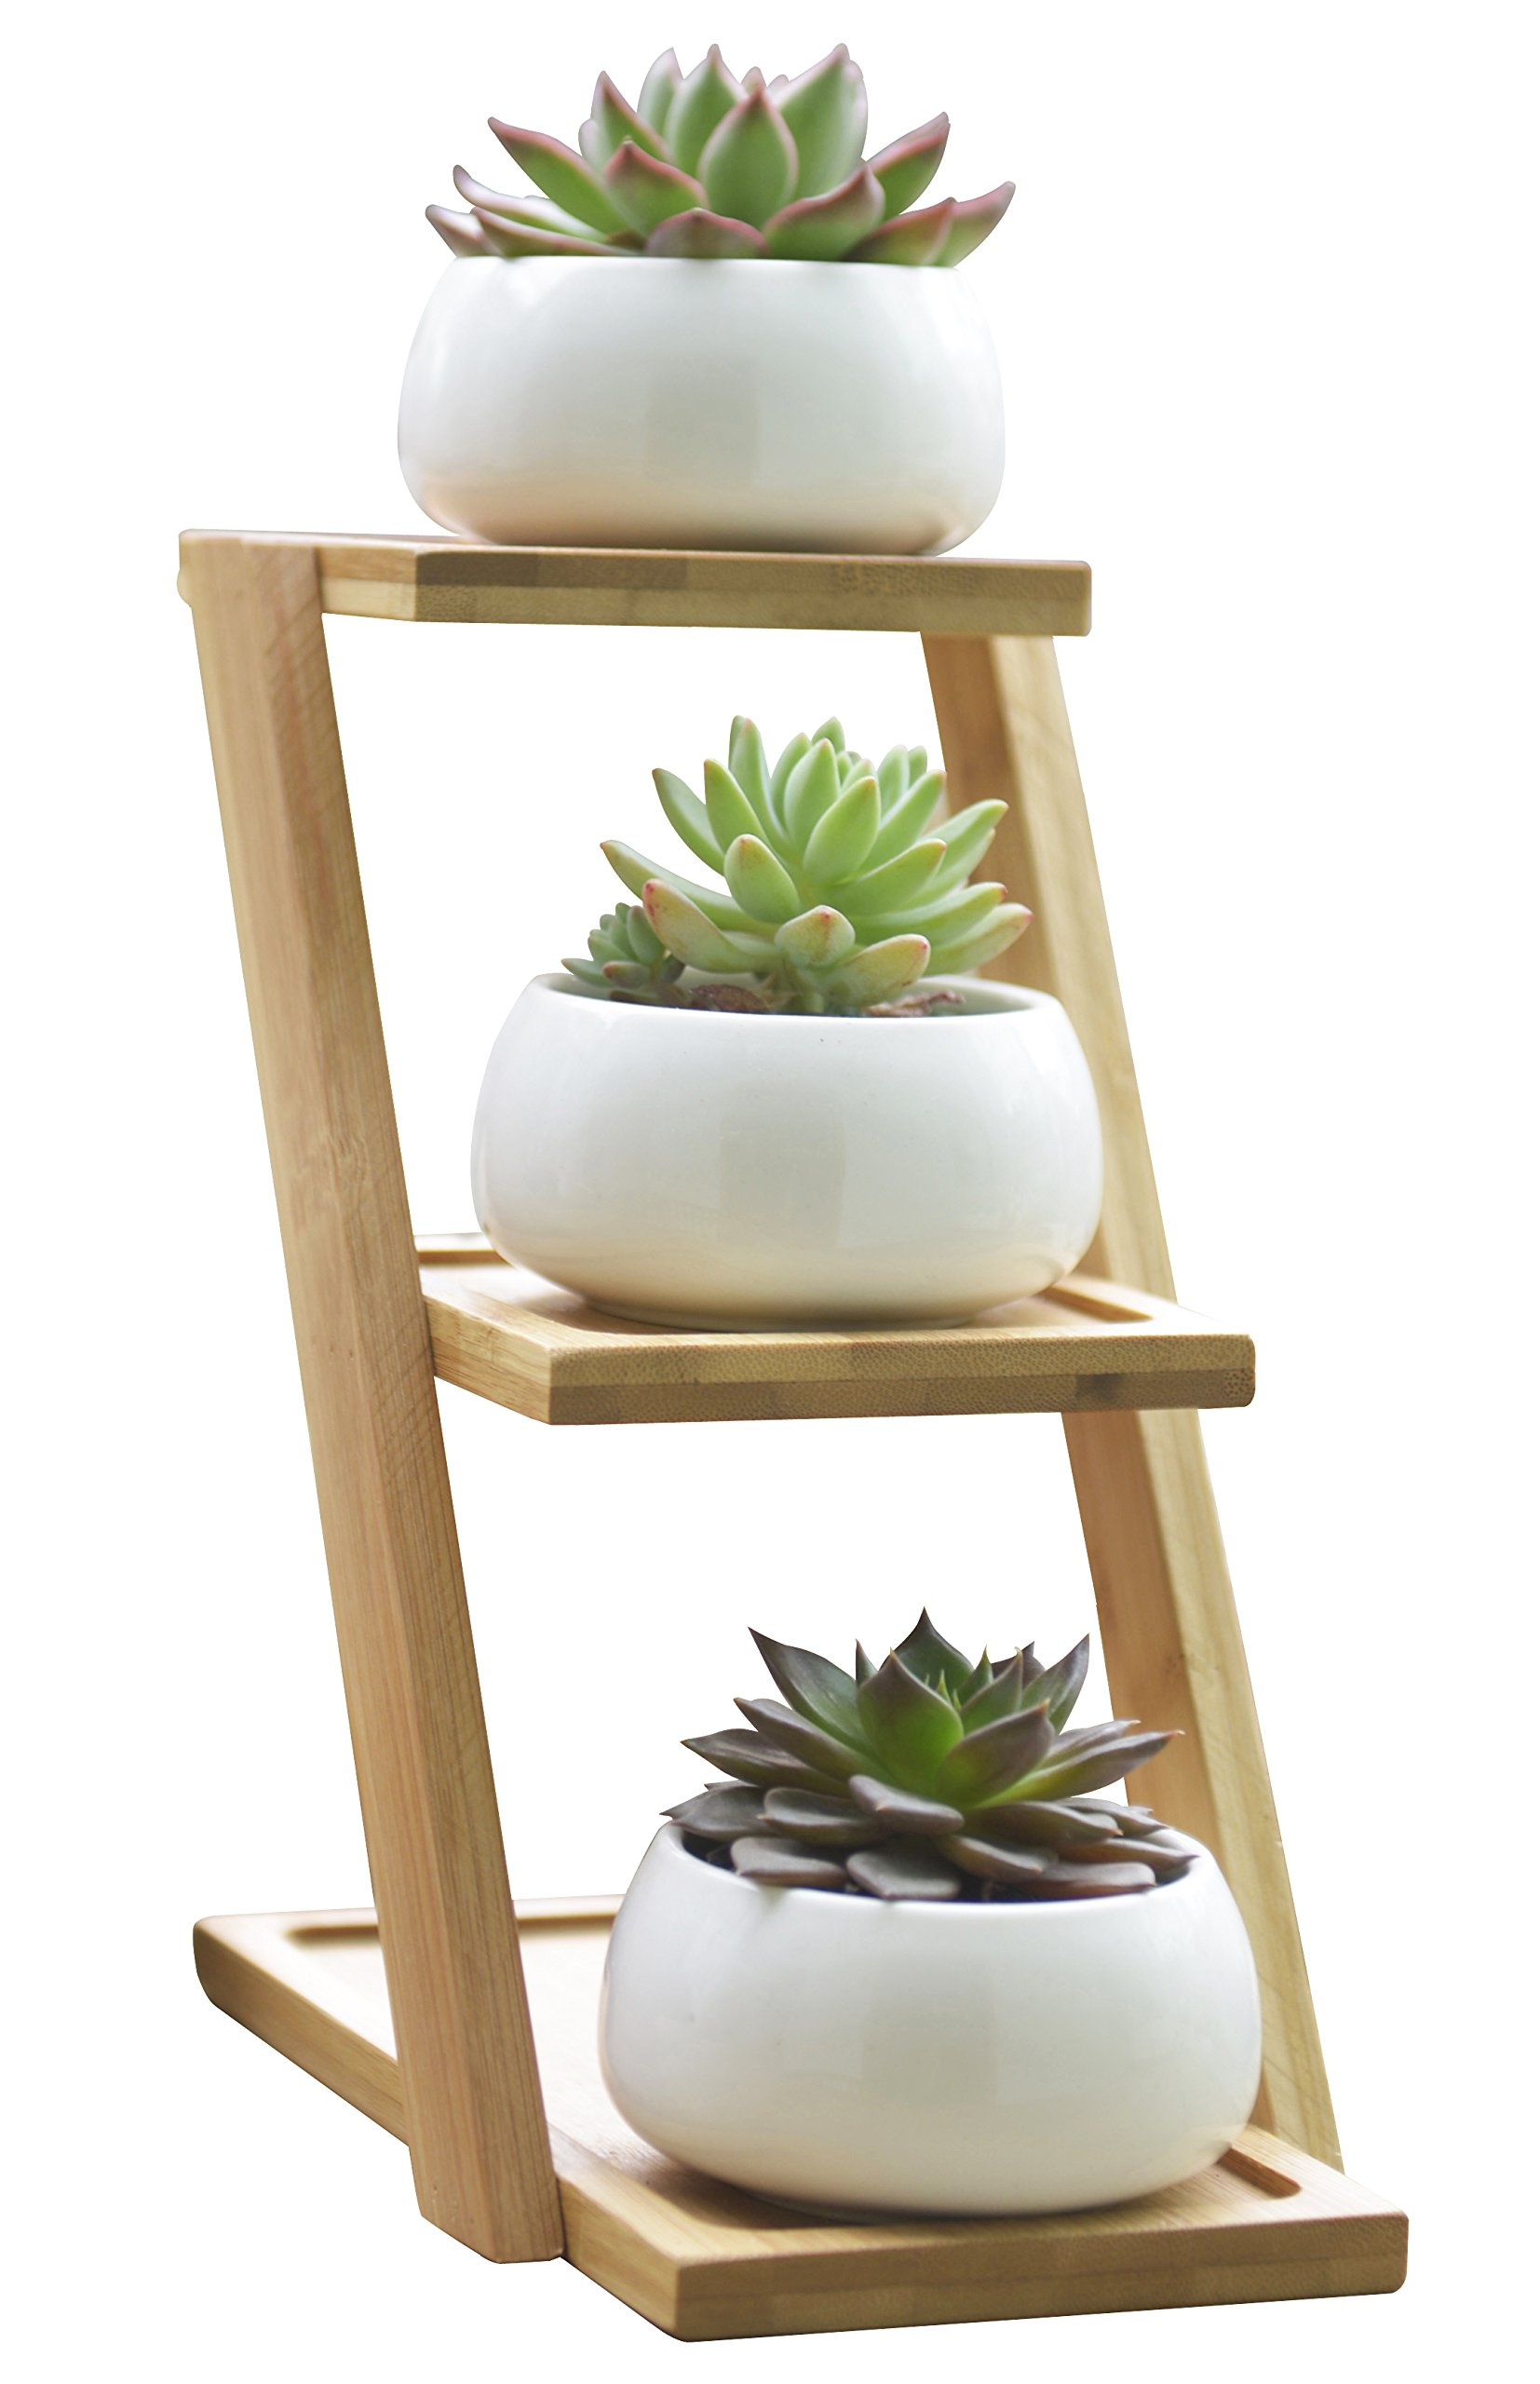 Jusalpha 3.2 Inches Ceramic Modern Decorative Small Round Succulent Plant Pot, Planter for Succulent Plants, Small Cactus and Herbs with Bamboo Tray for Room Decor- Set of 3 (White) by Jusalpha